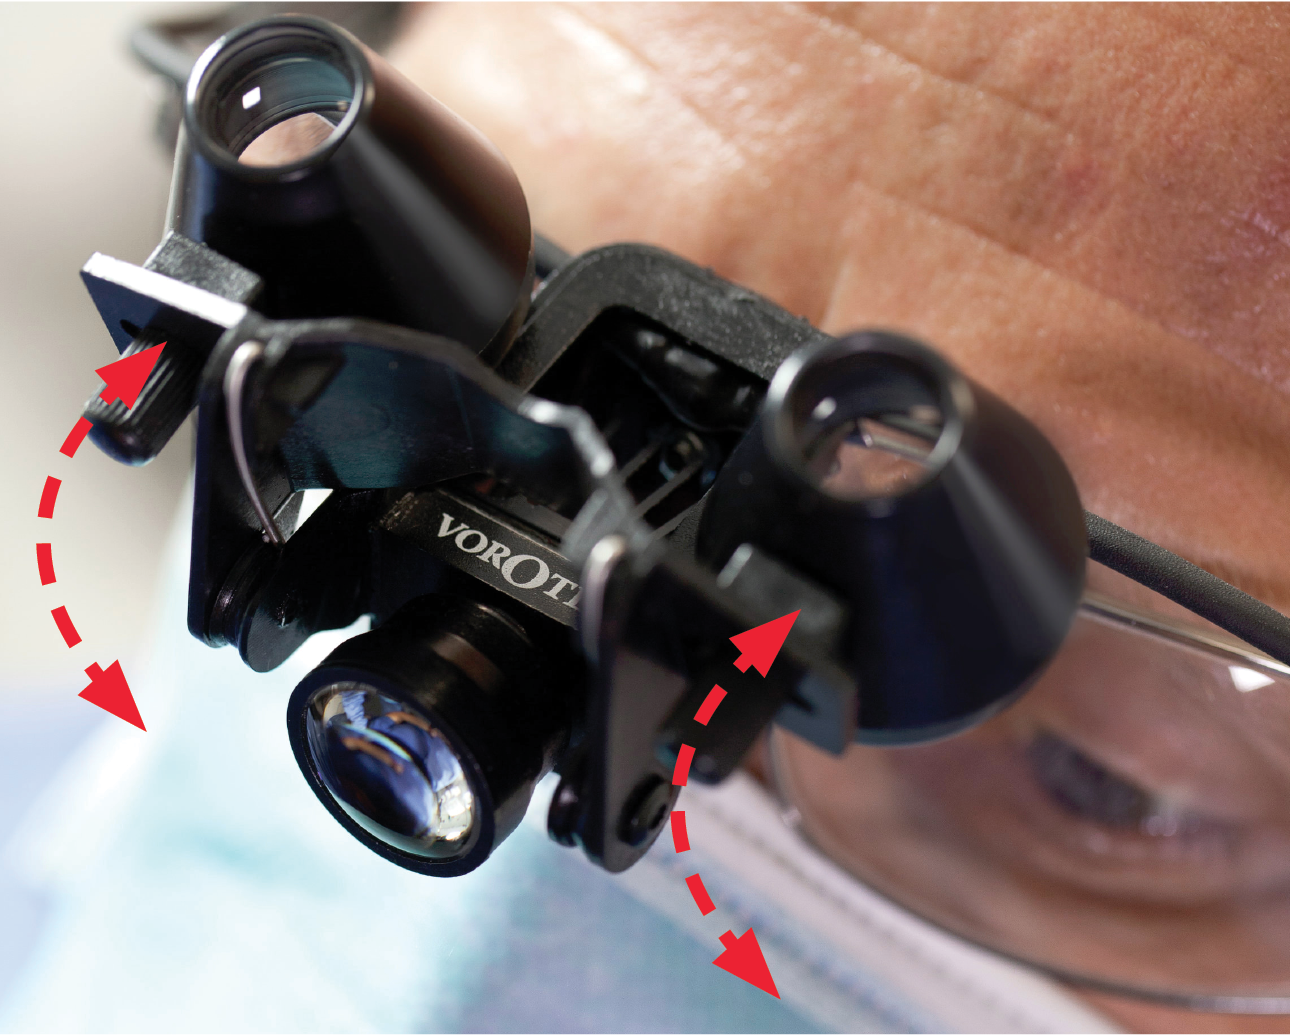 Precise Flip-Up Design - The loupes can be easily rotated in and out of use, returning back into the exact set-up position. Upward rotation of the loupes allows uninterrupted vision